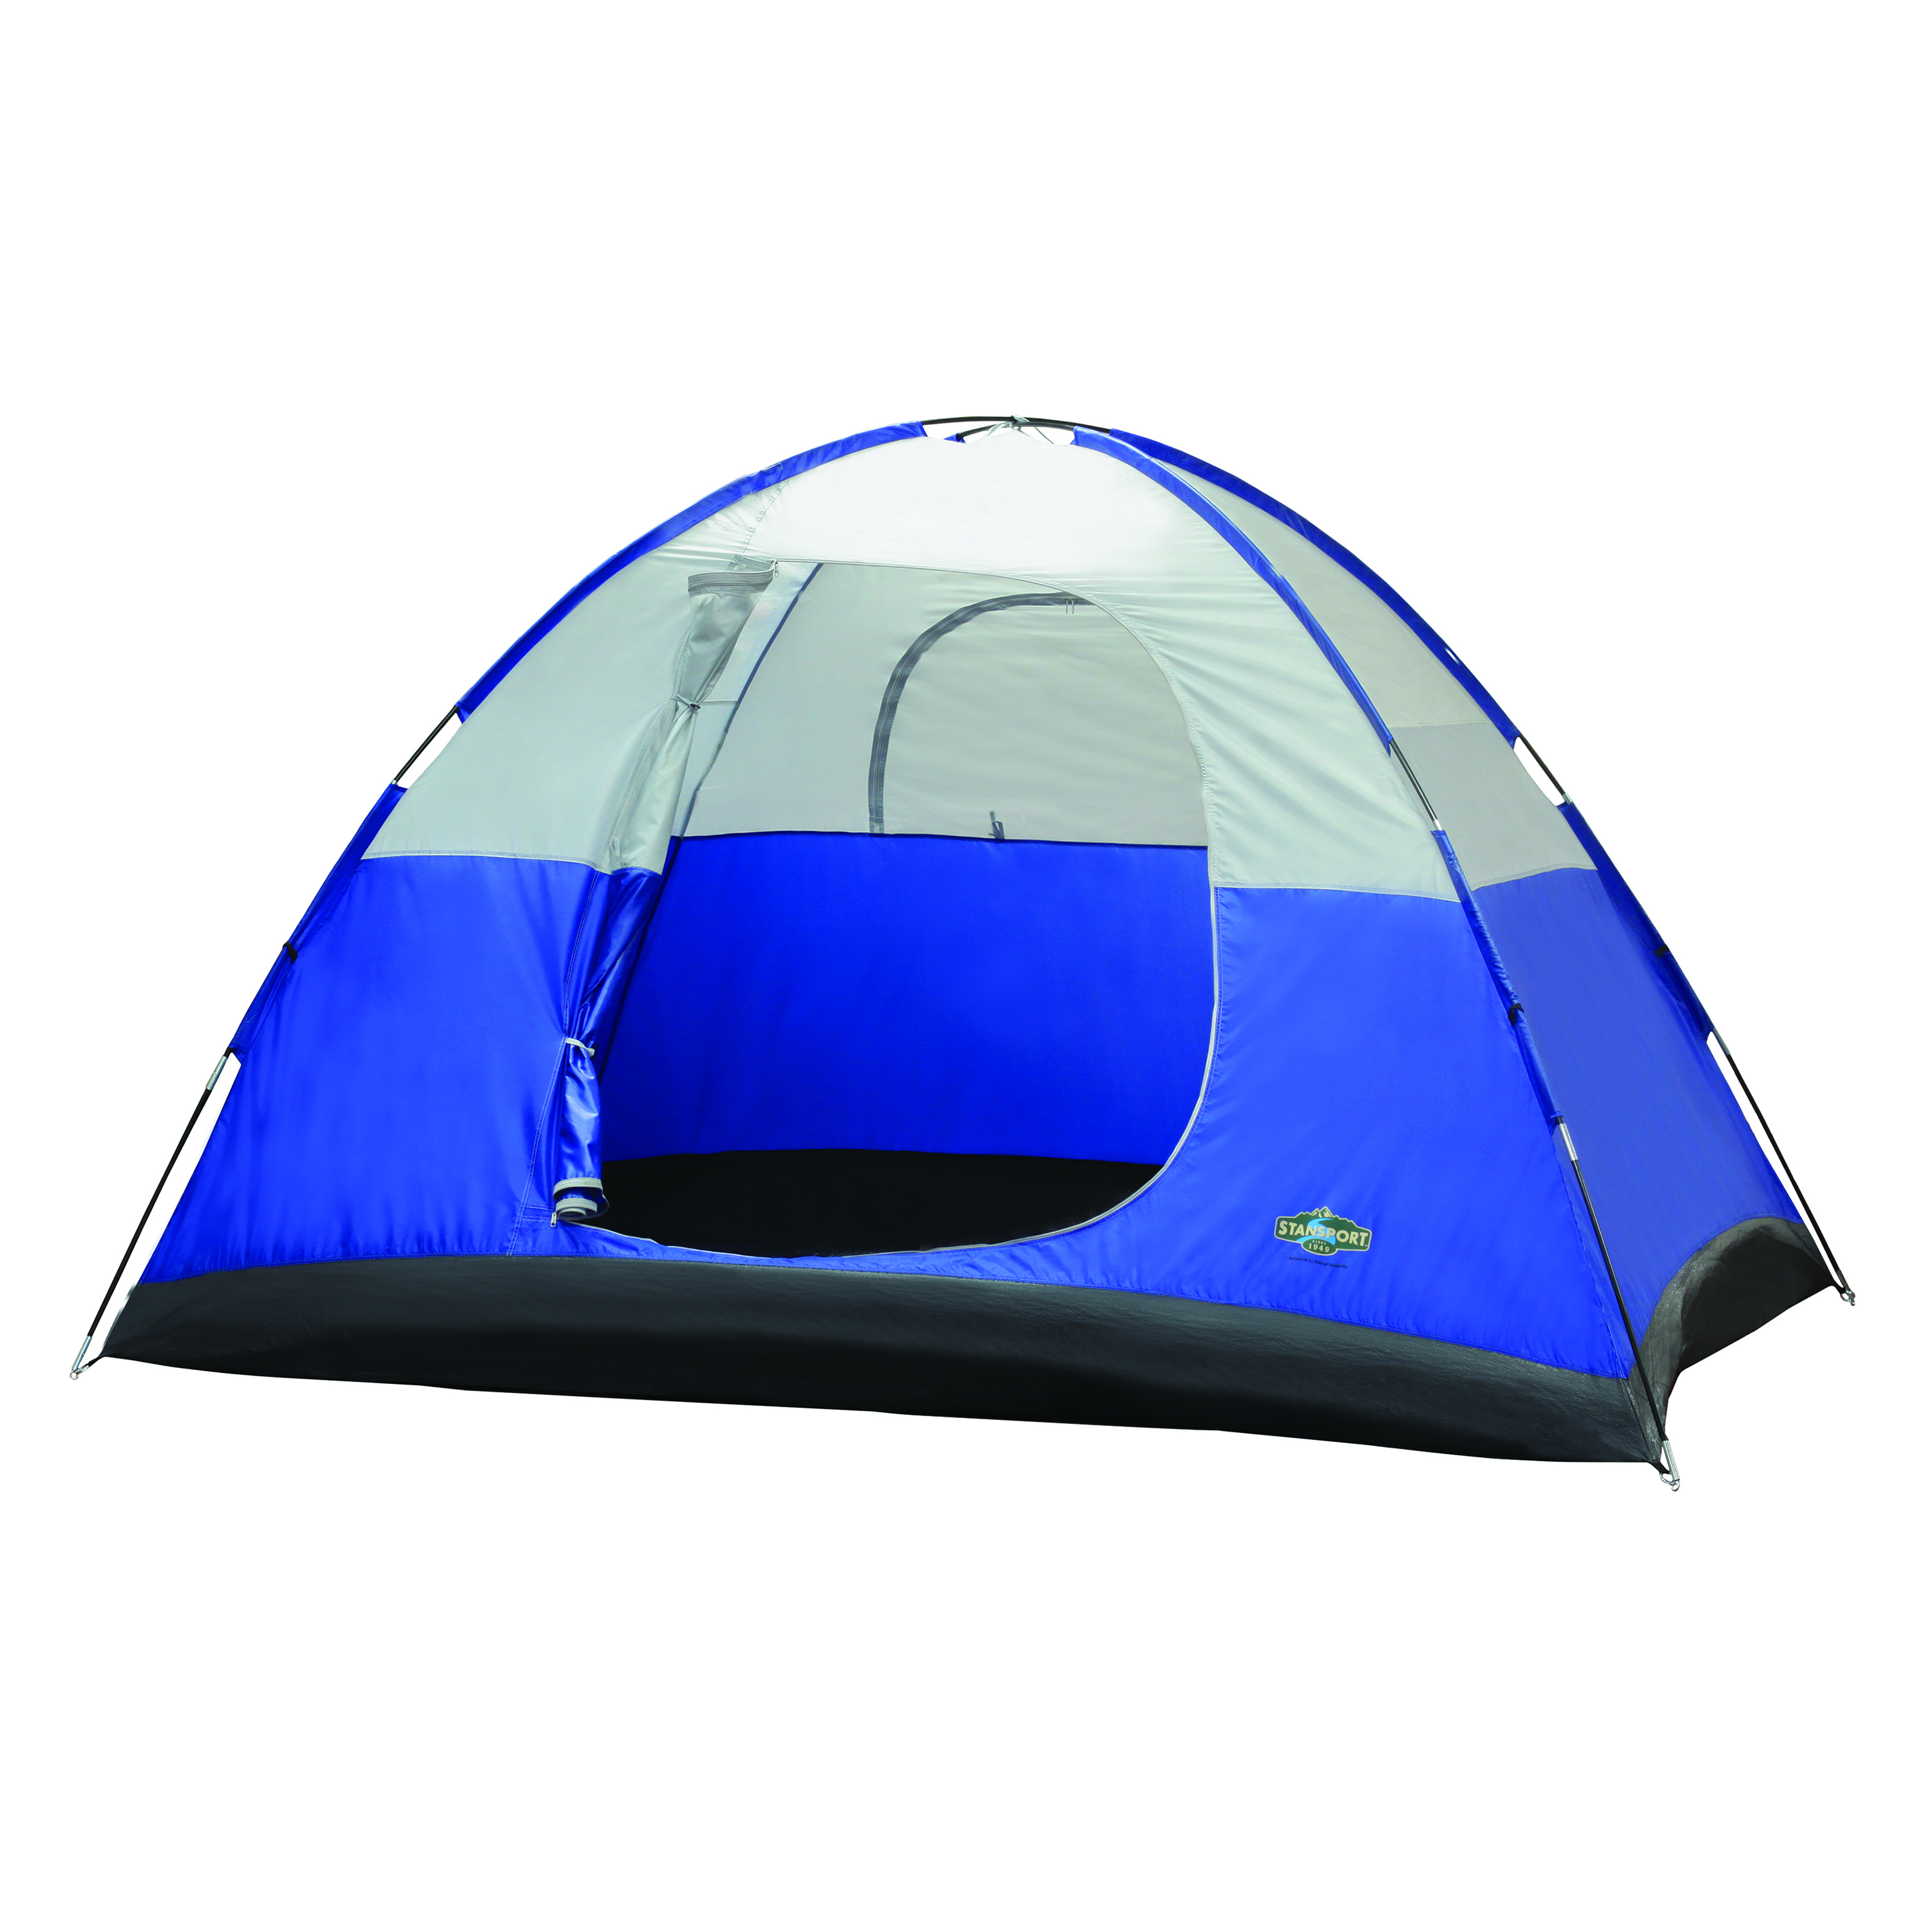 3 Season Tent, 8' x 10' x 6', Teton by Stansport